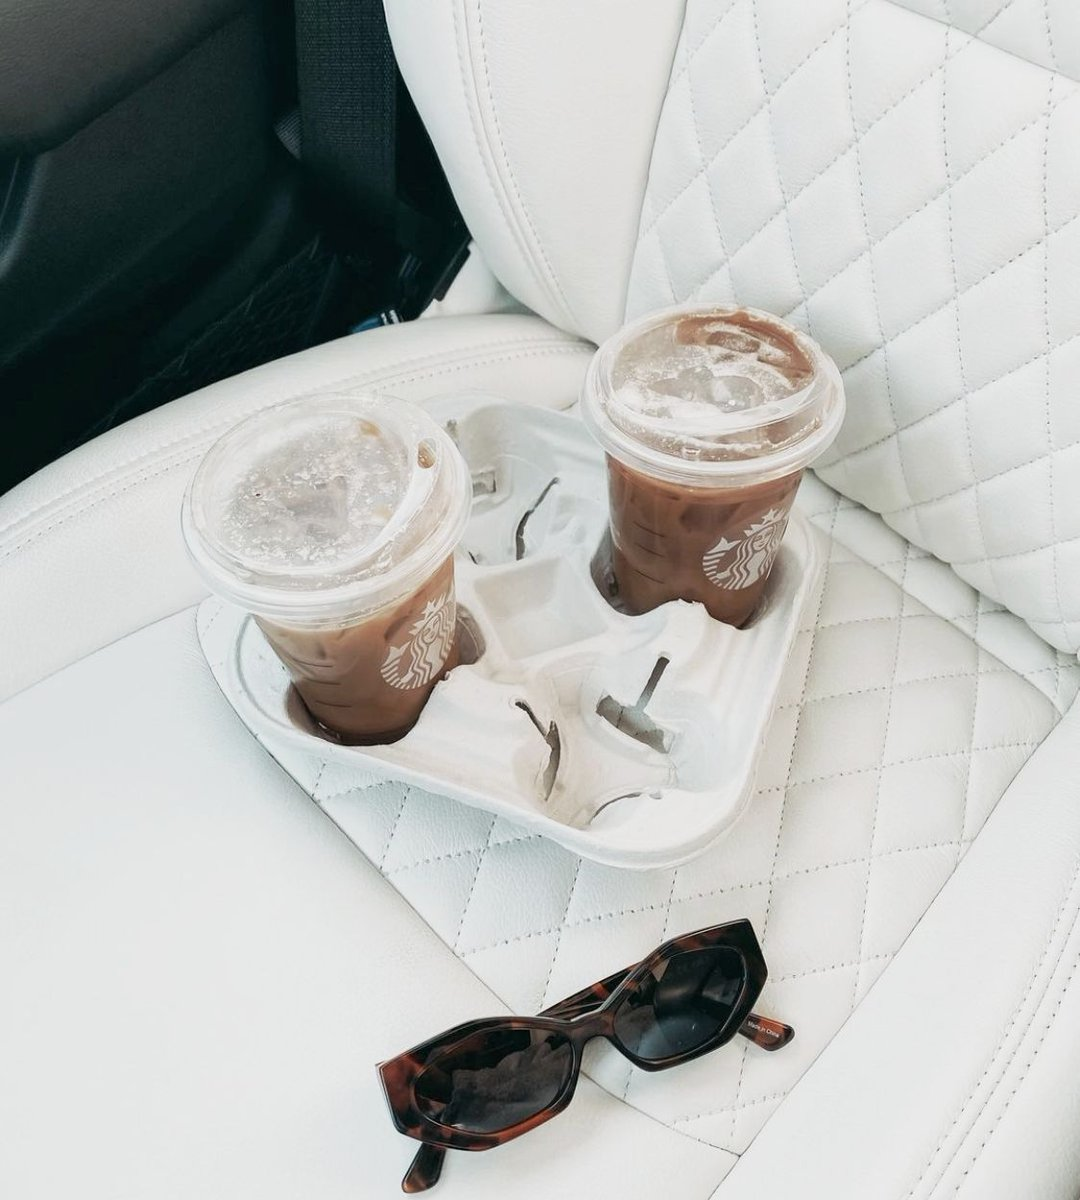 It's Monday - be as bold and daring as @gretzieparth 😮  #whiteleather #diamondstitching #butfirstcoffee #loveyourdrive #becauseclothsucks #leatherisbetter #katzkin #katzkinleather #customleather #custominterior #craftedleather #artisanalleather #carinterior https://t.co/CNfSnNsVeO